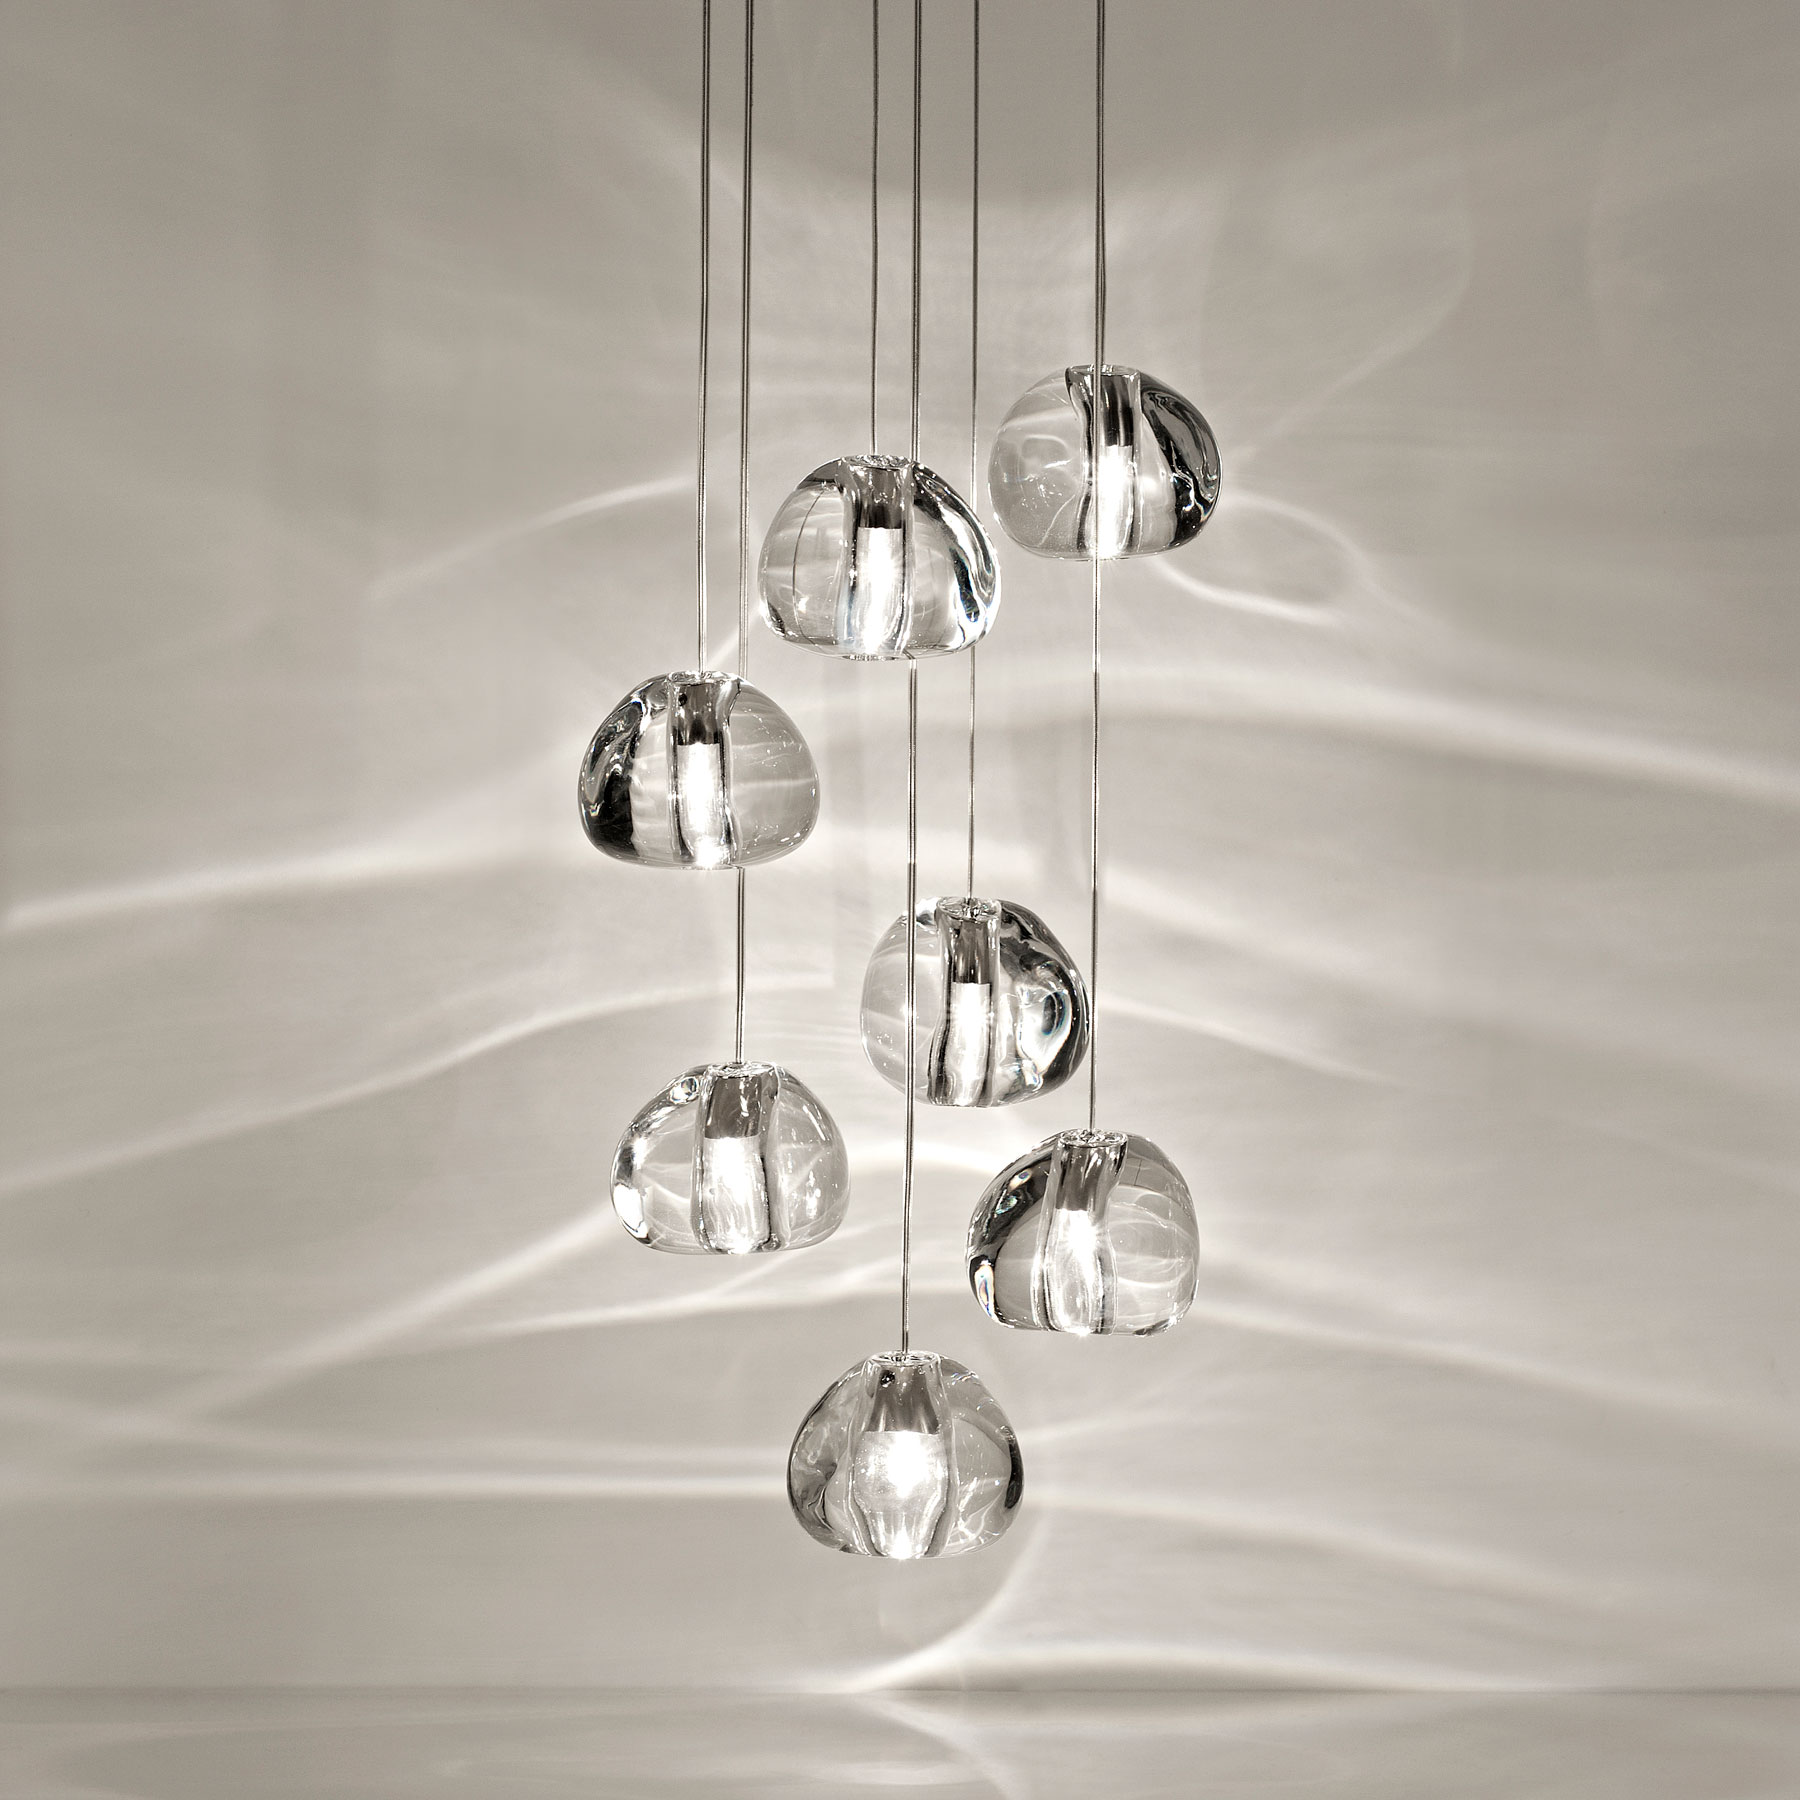 light pendant by terzani usa  rshaa - mizu  light pendant by terzani usa  rshaa